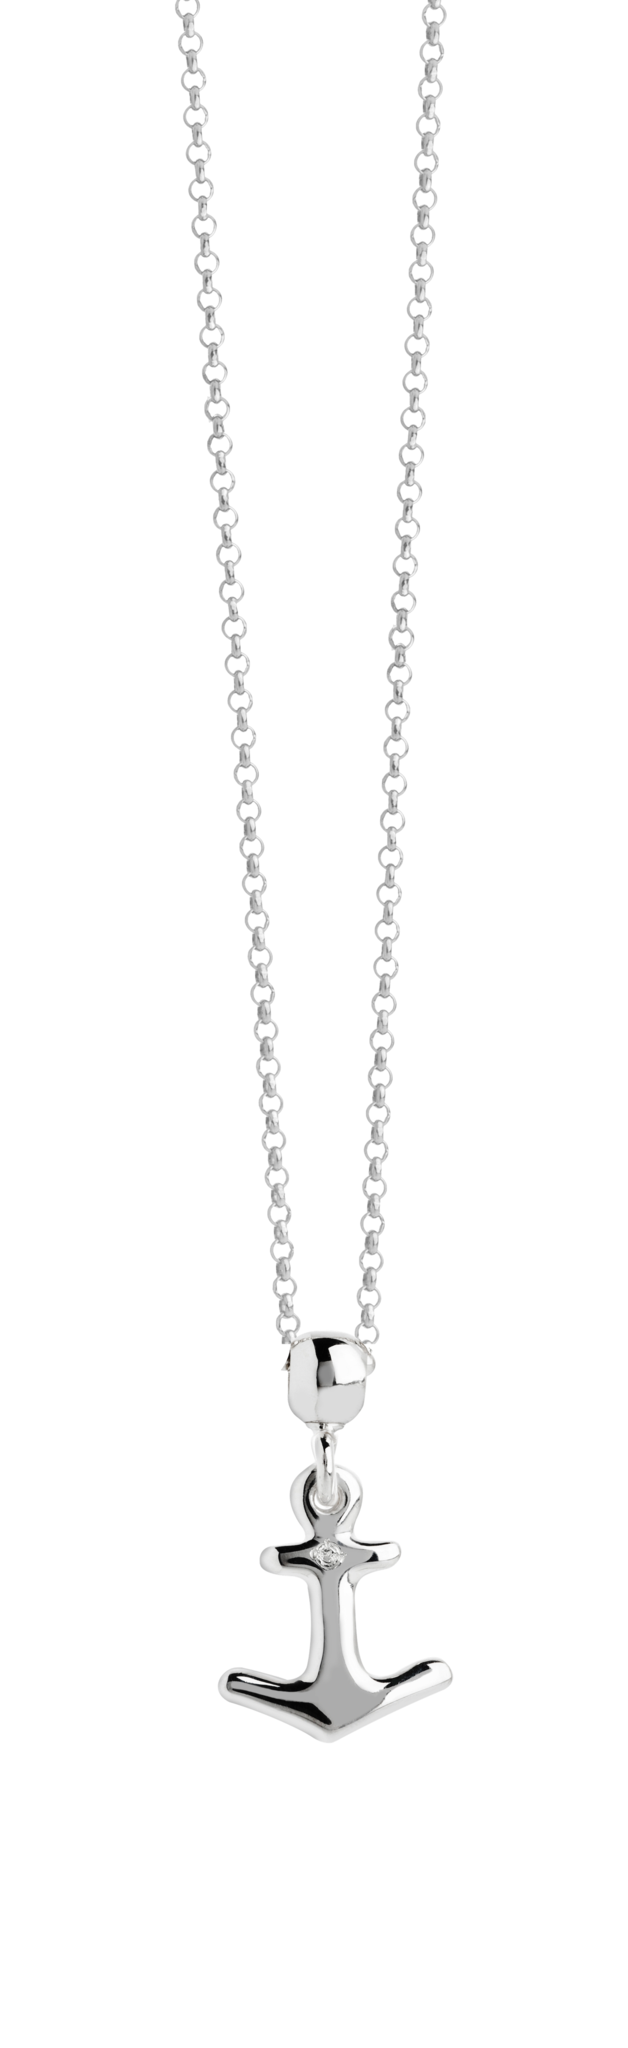 necklace silver